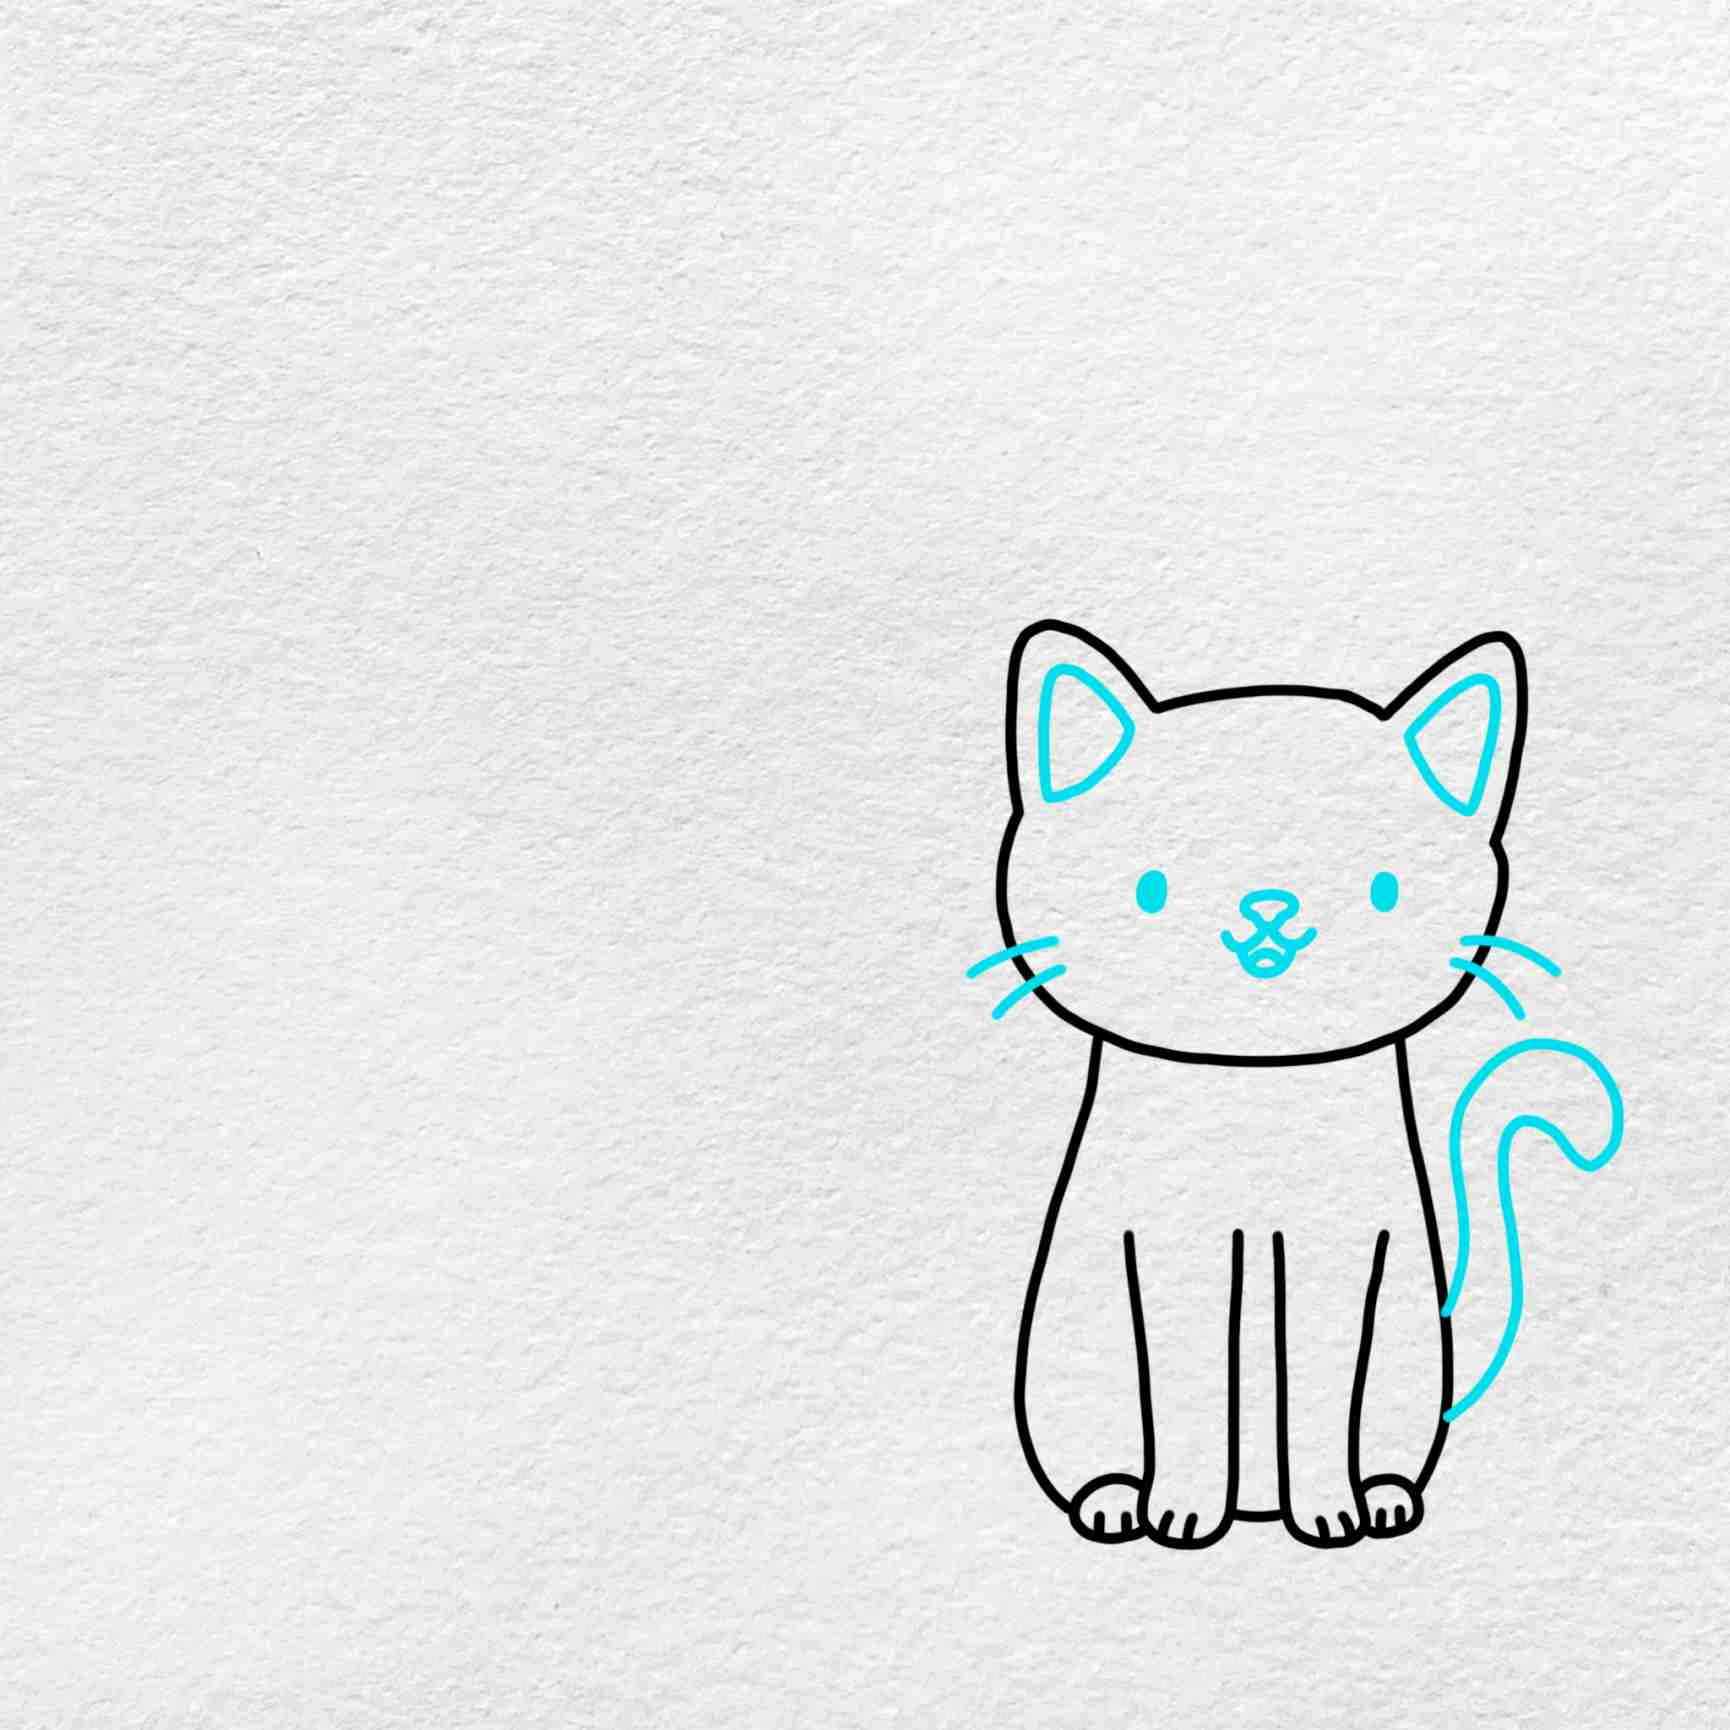 Cat And Dog Drawing: Step 4